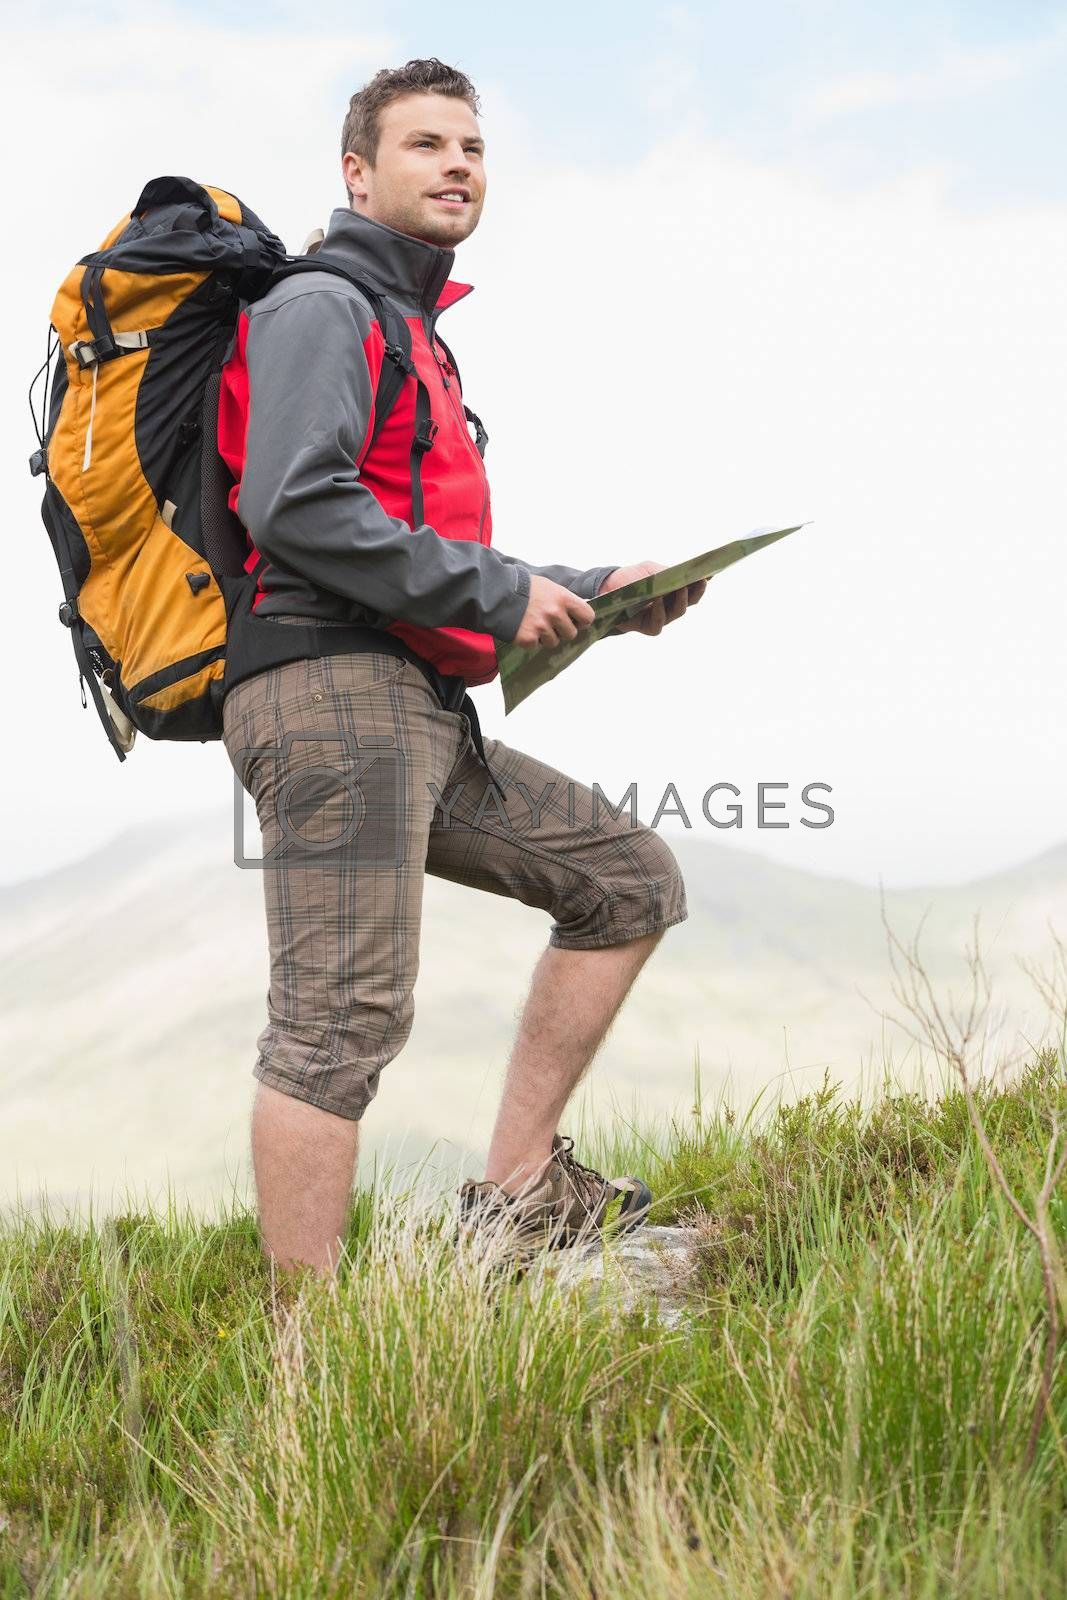 Handsome hiker with rucksack walking uphill holding a map by Wavebreakmedia